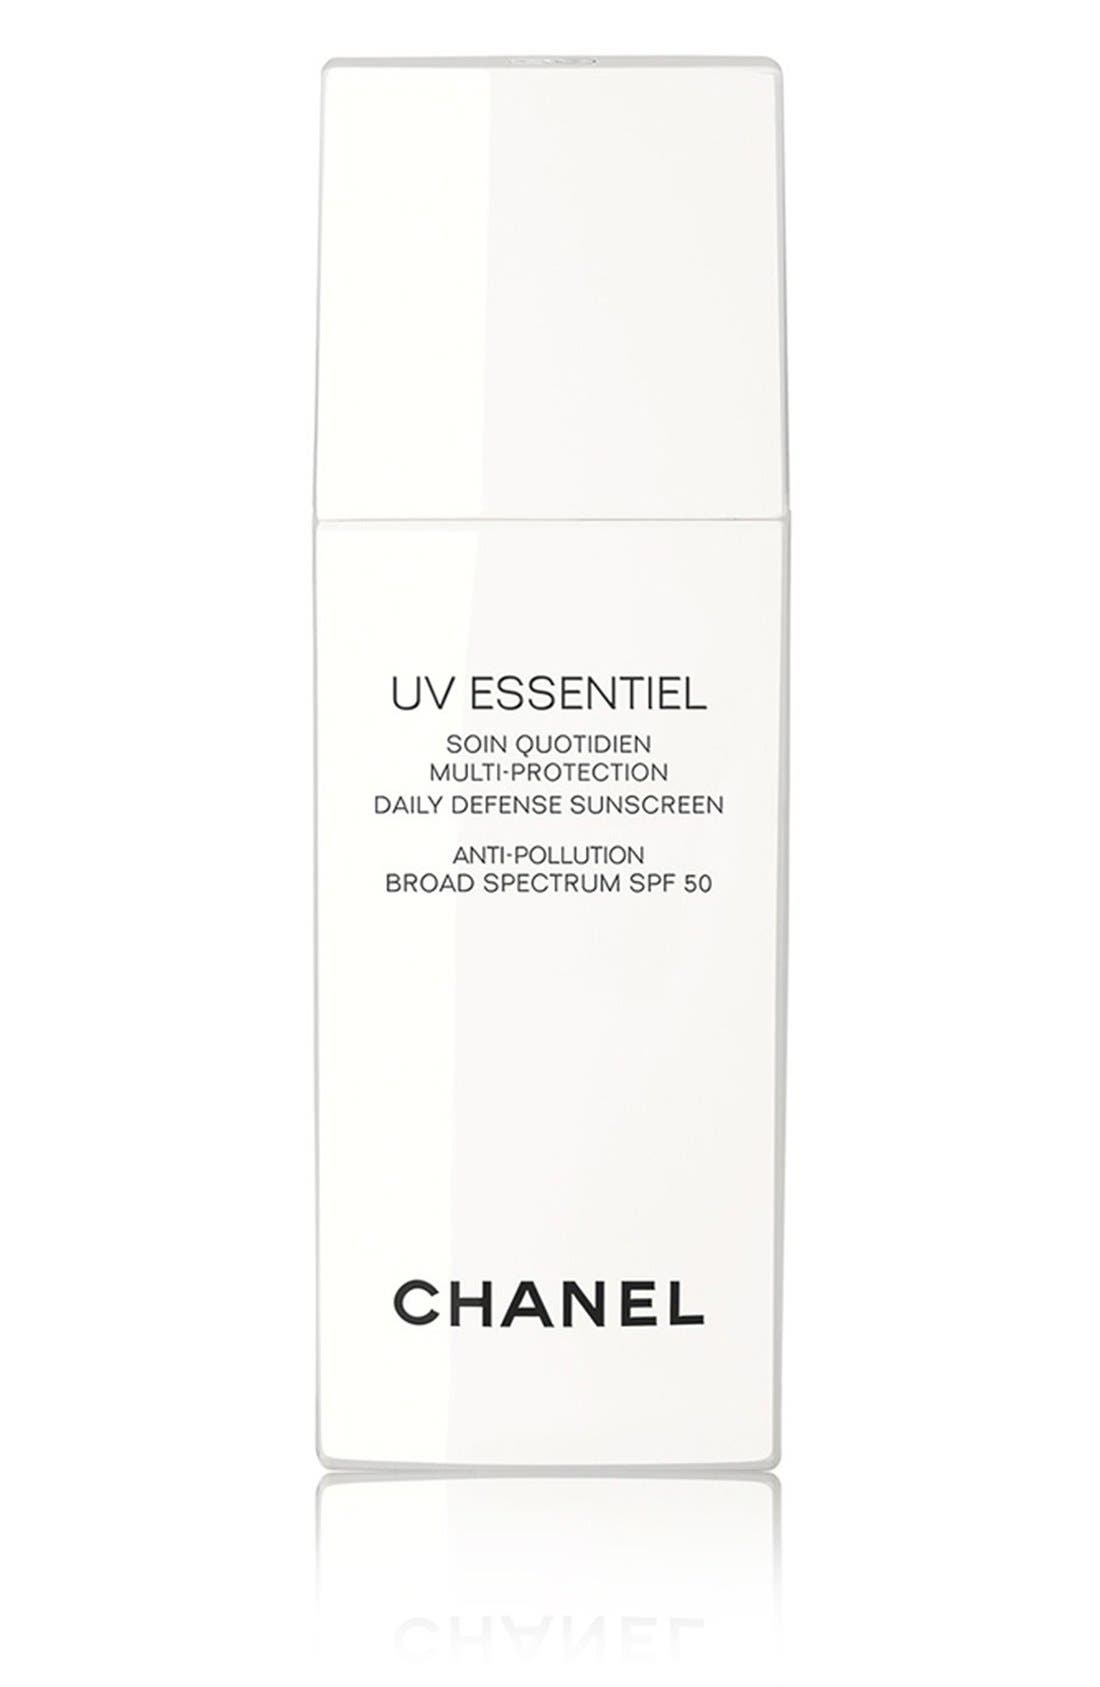 UV ESSENTIEL<br />Multi-Protection Daily Defense Sunscreen Anti-Pollution Broad Spectrum SPF 50,                             Main thumbnail 1, color,                             NO COLOR